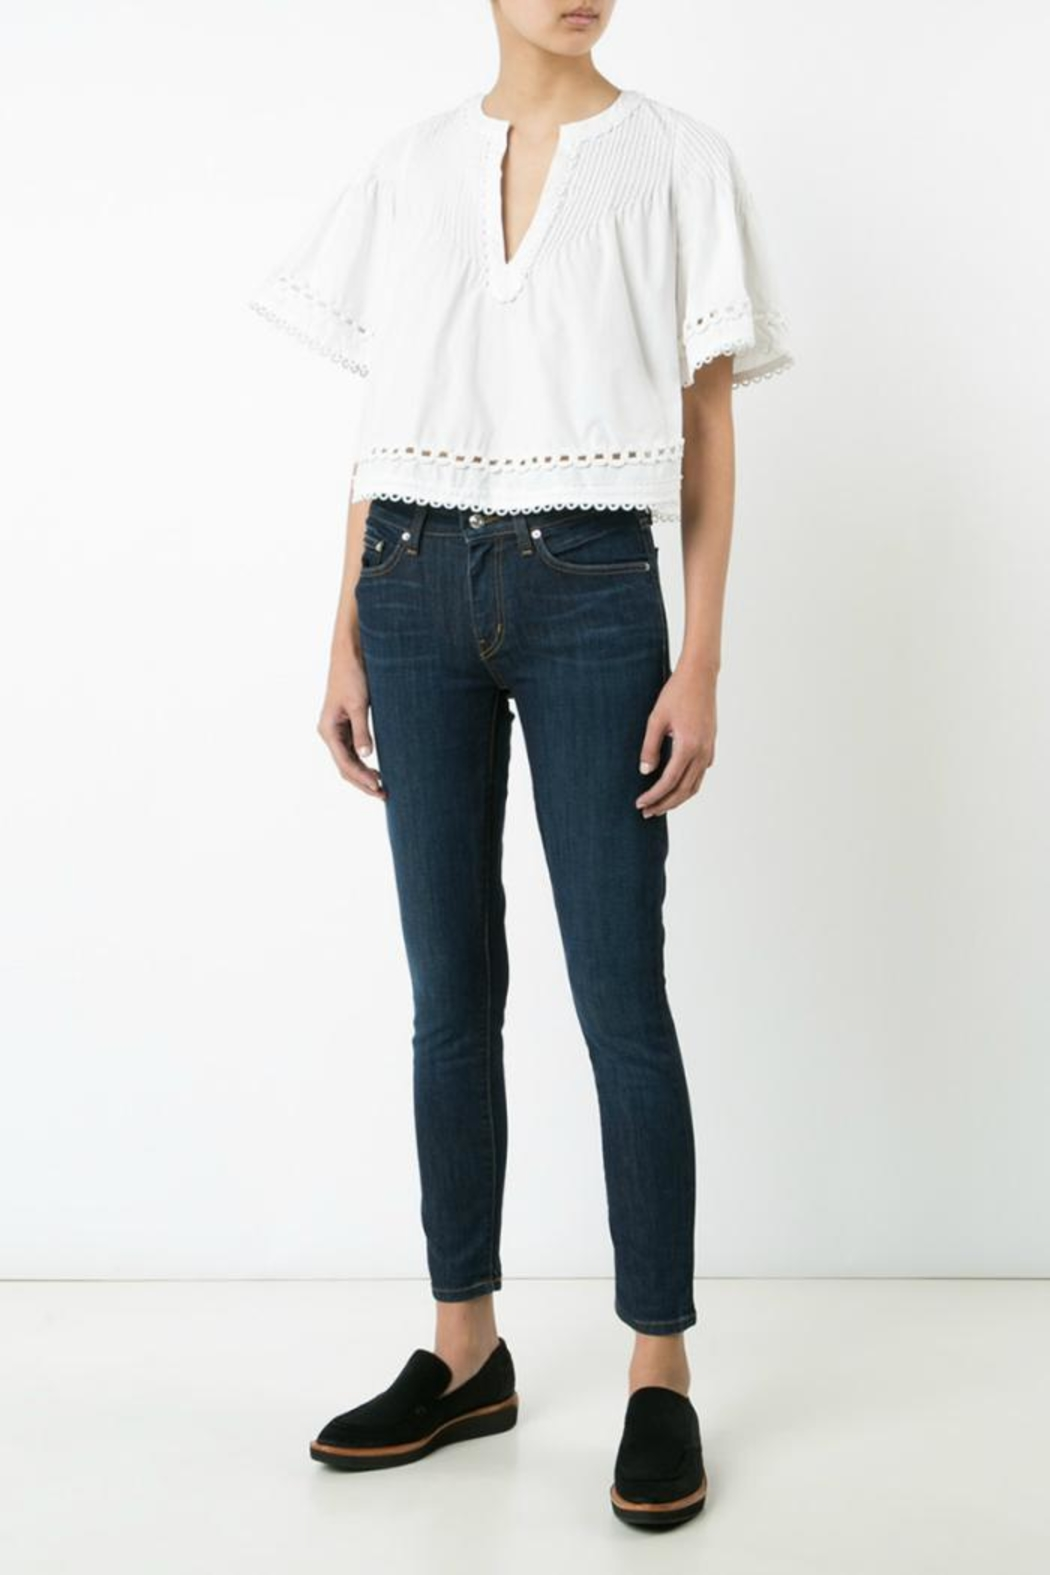 Derek Lam 10 Crosby Embroidered Pintuck Top - Side Cropped Image